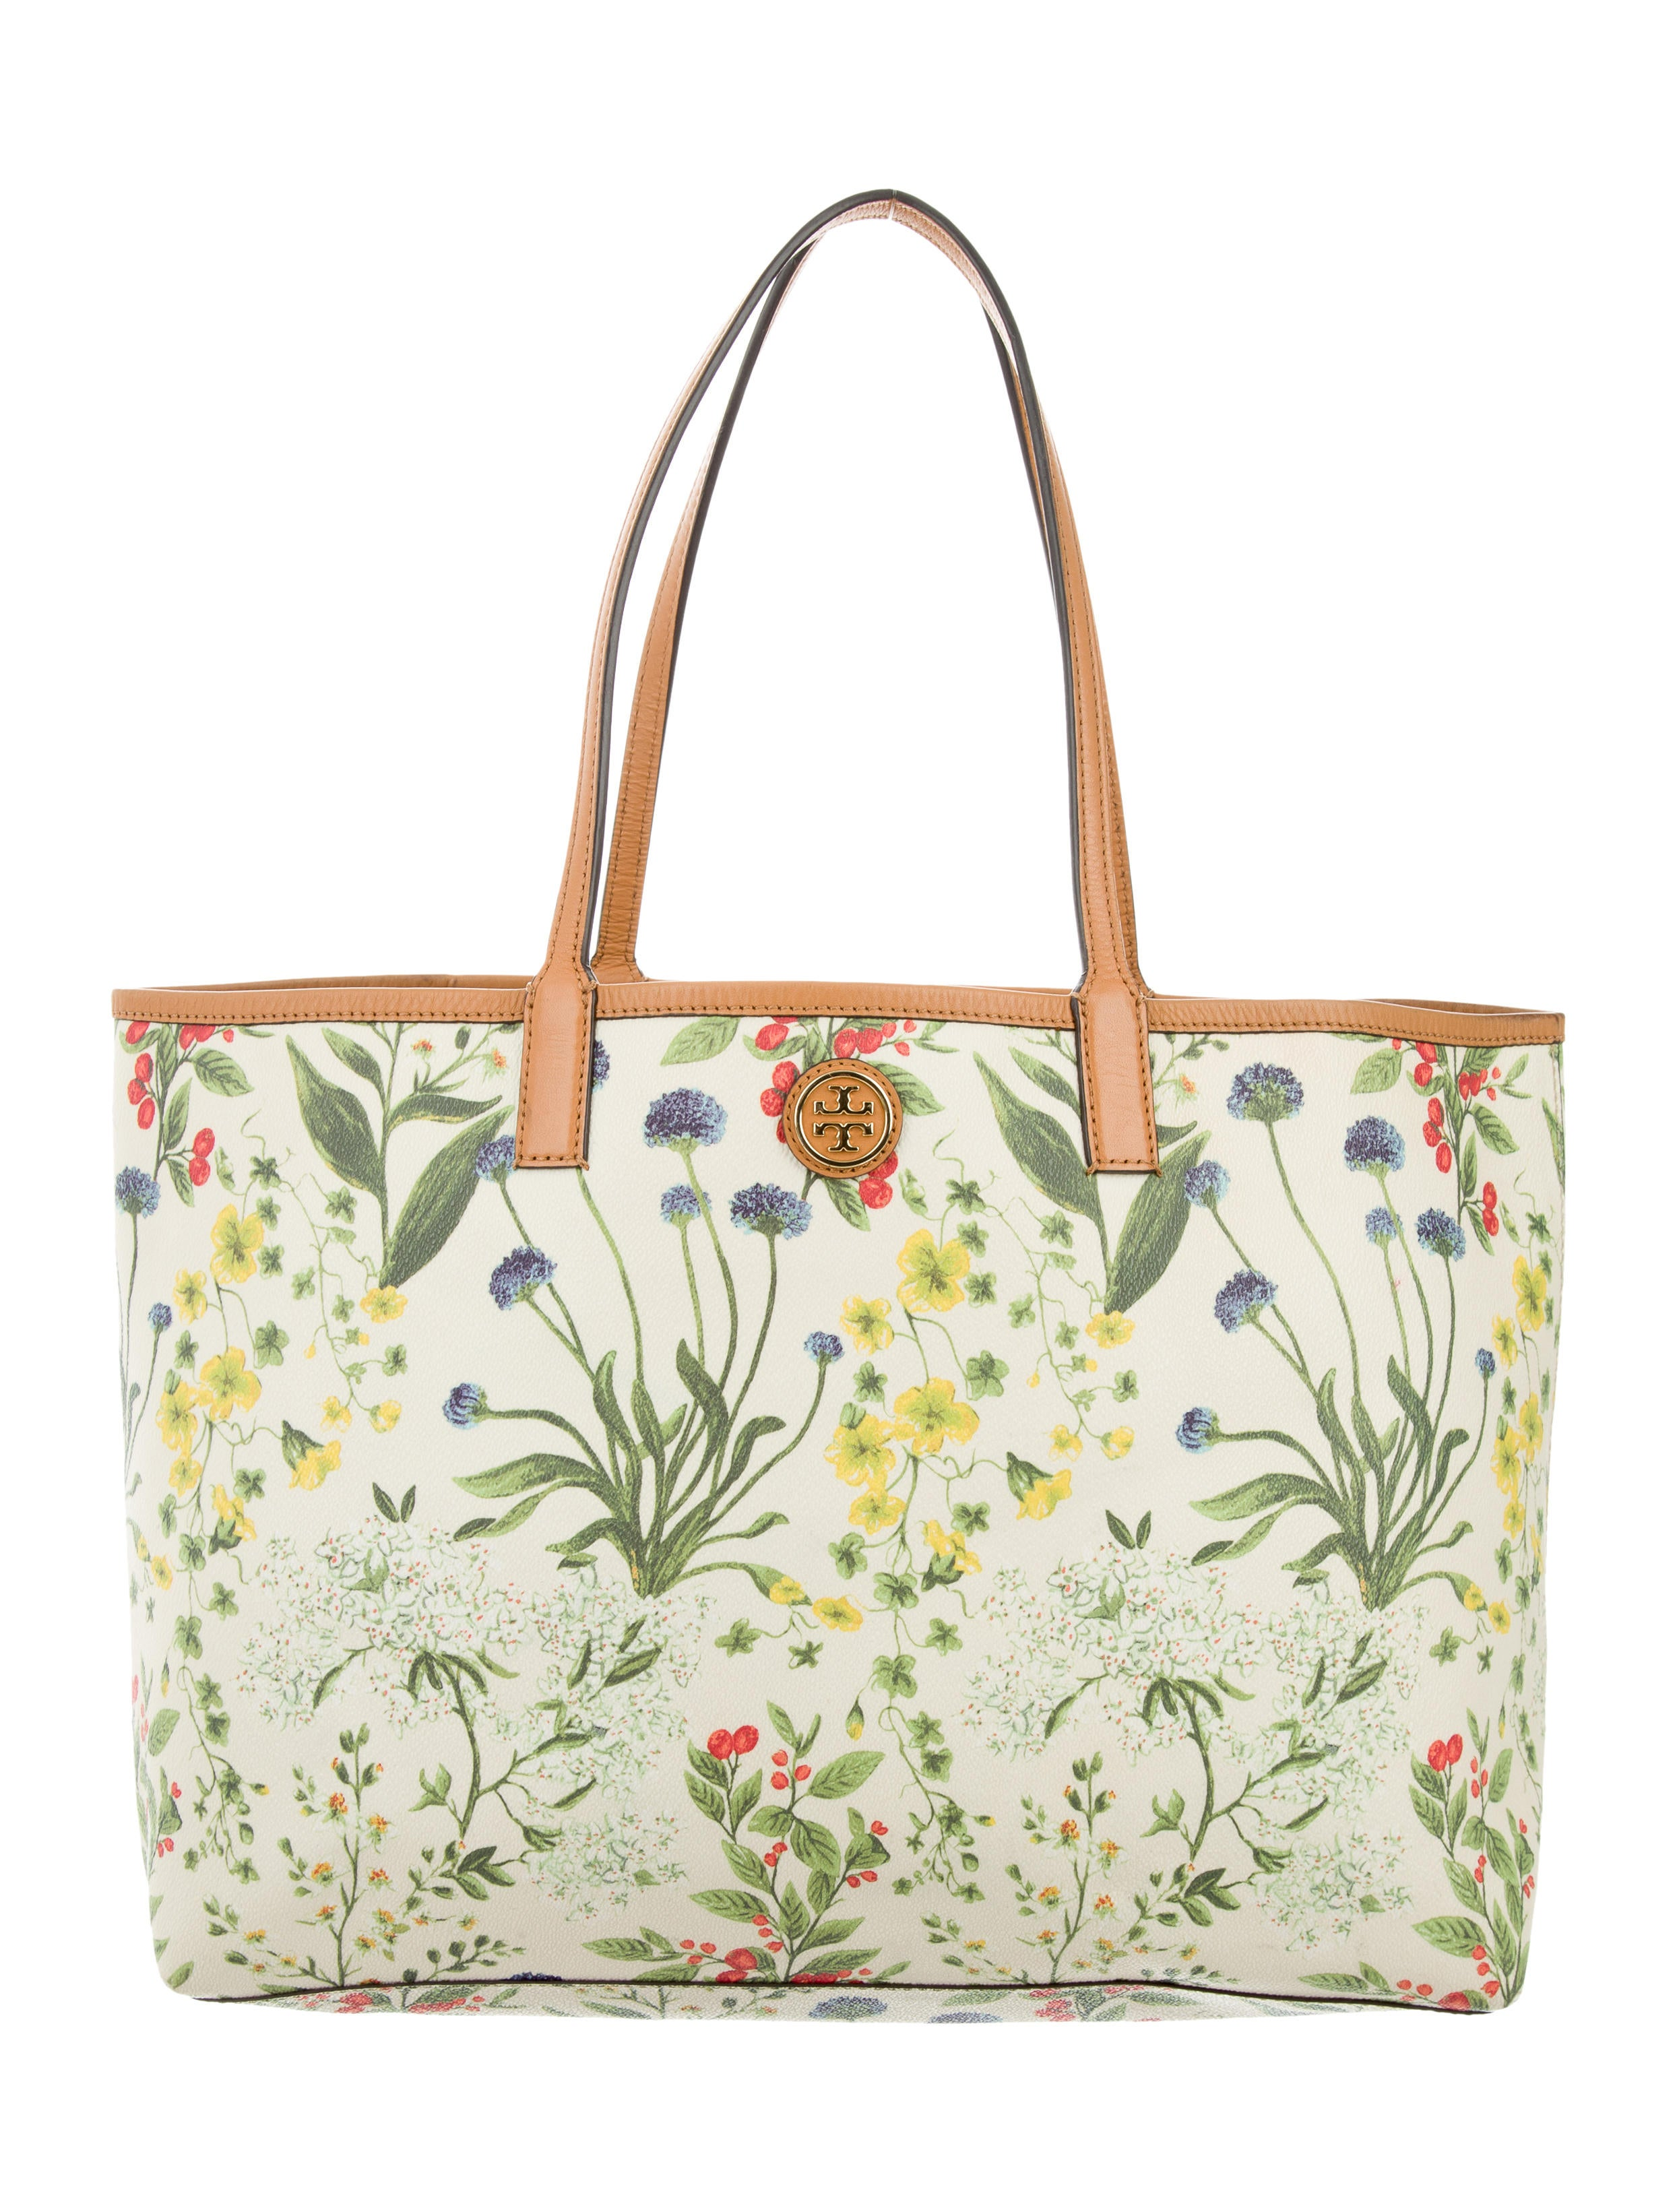 Tory Burch Kerrington Floral Print Shopper Bag Handbags